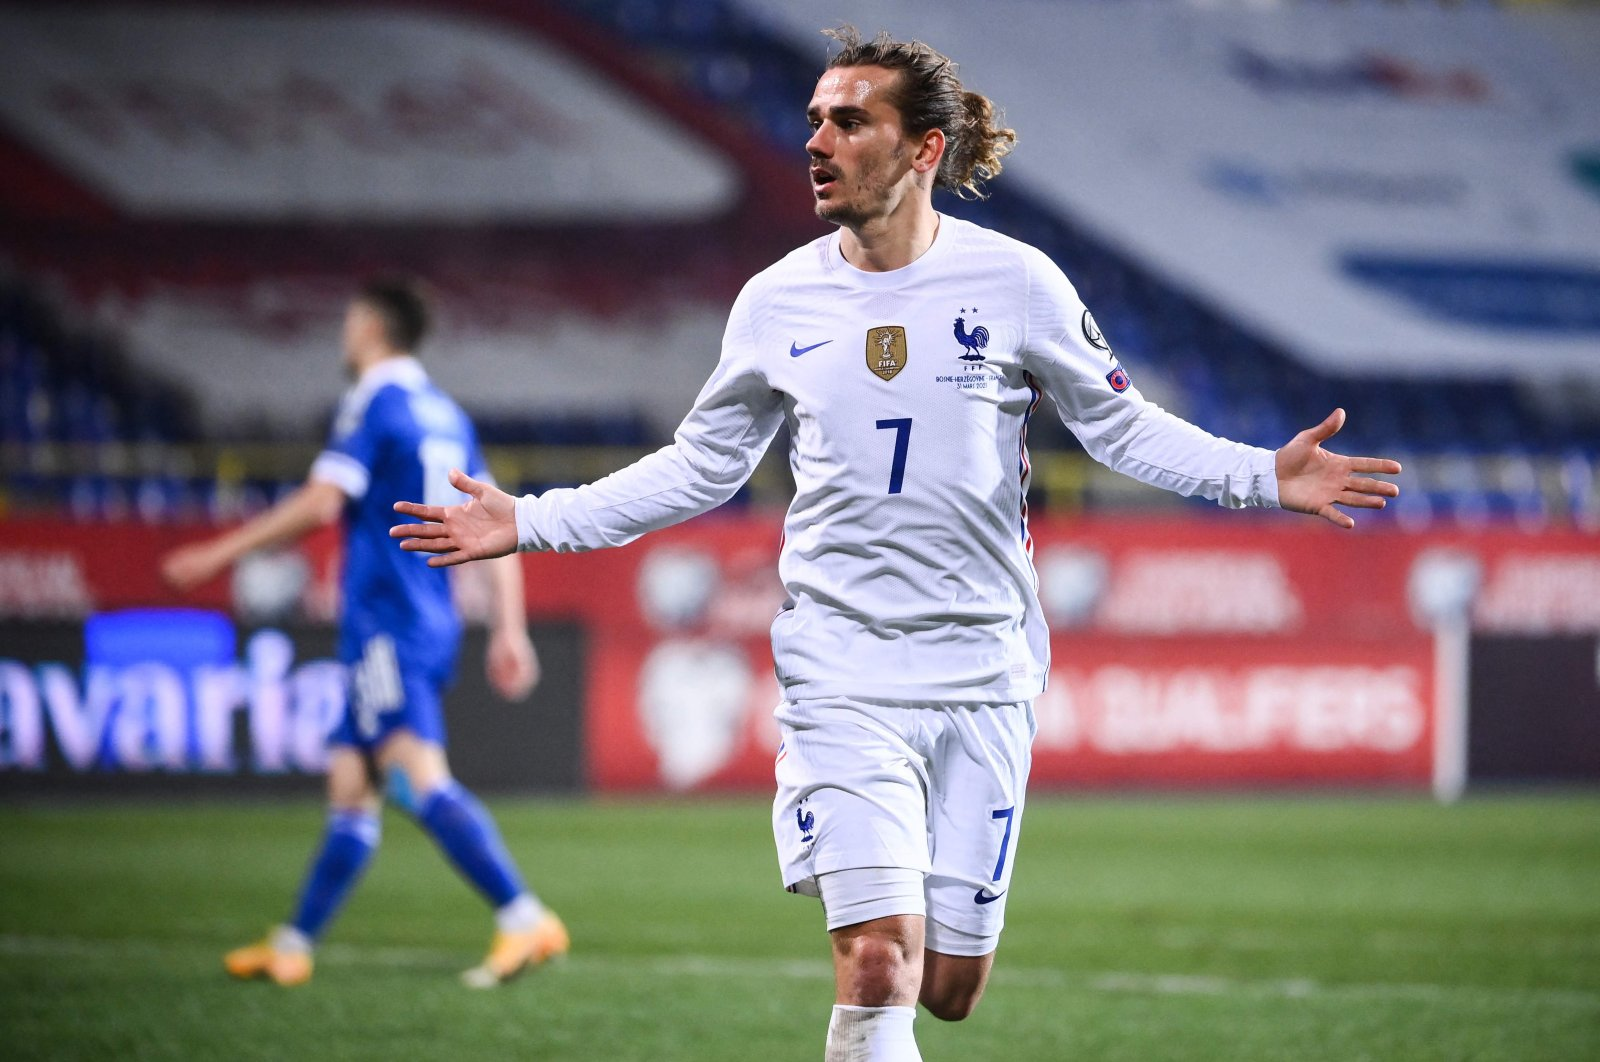 France's Antoine Griezmann celebrates after scoring a goal during the World Cup 2022 group D qualifying football match between Bosnia and France, at the Grbavica stadium in Sarajevo, Bosnia-Herzegovina, March 31, 2021. (AP Photo)